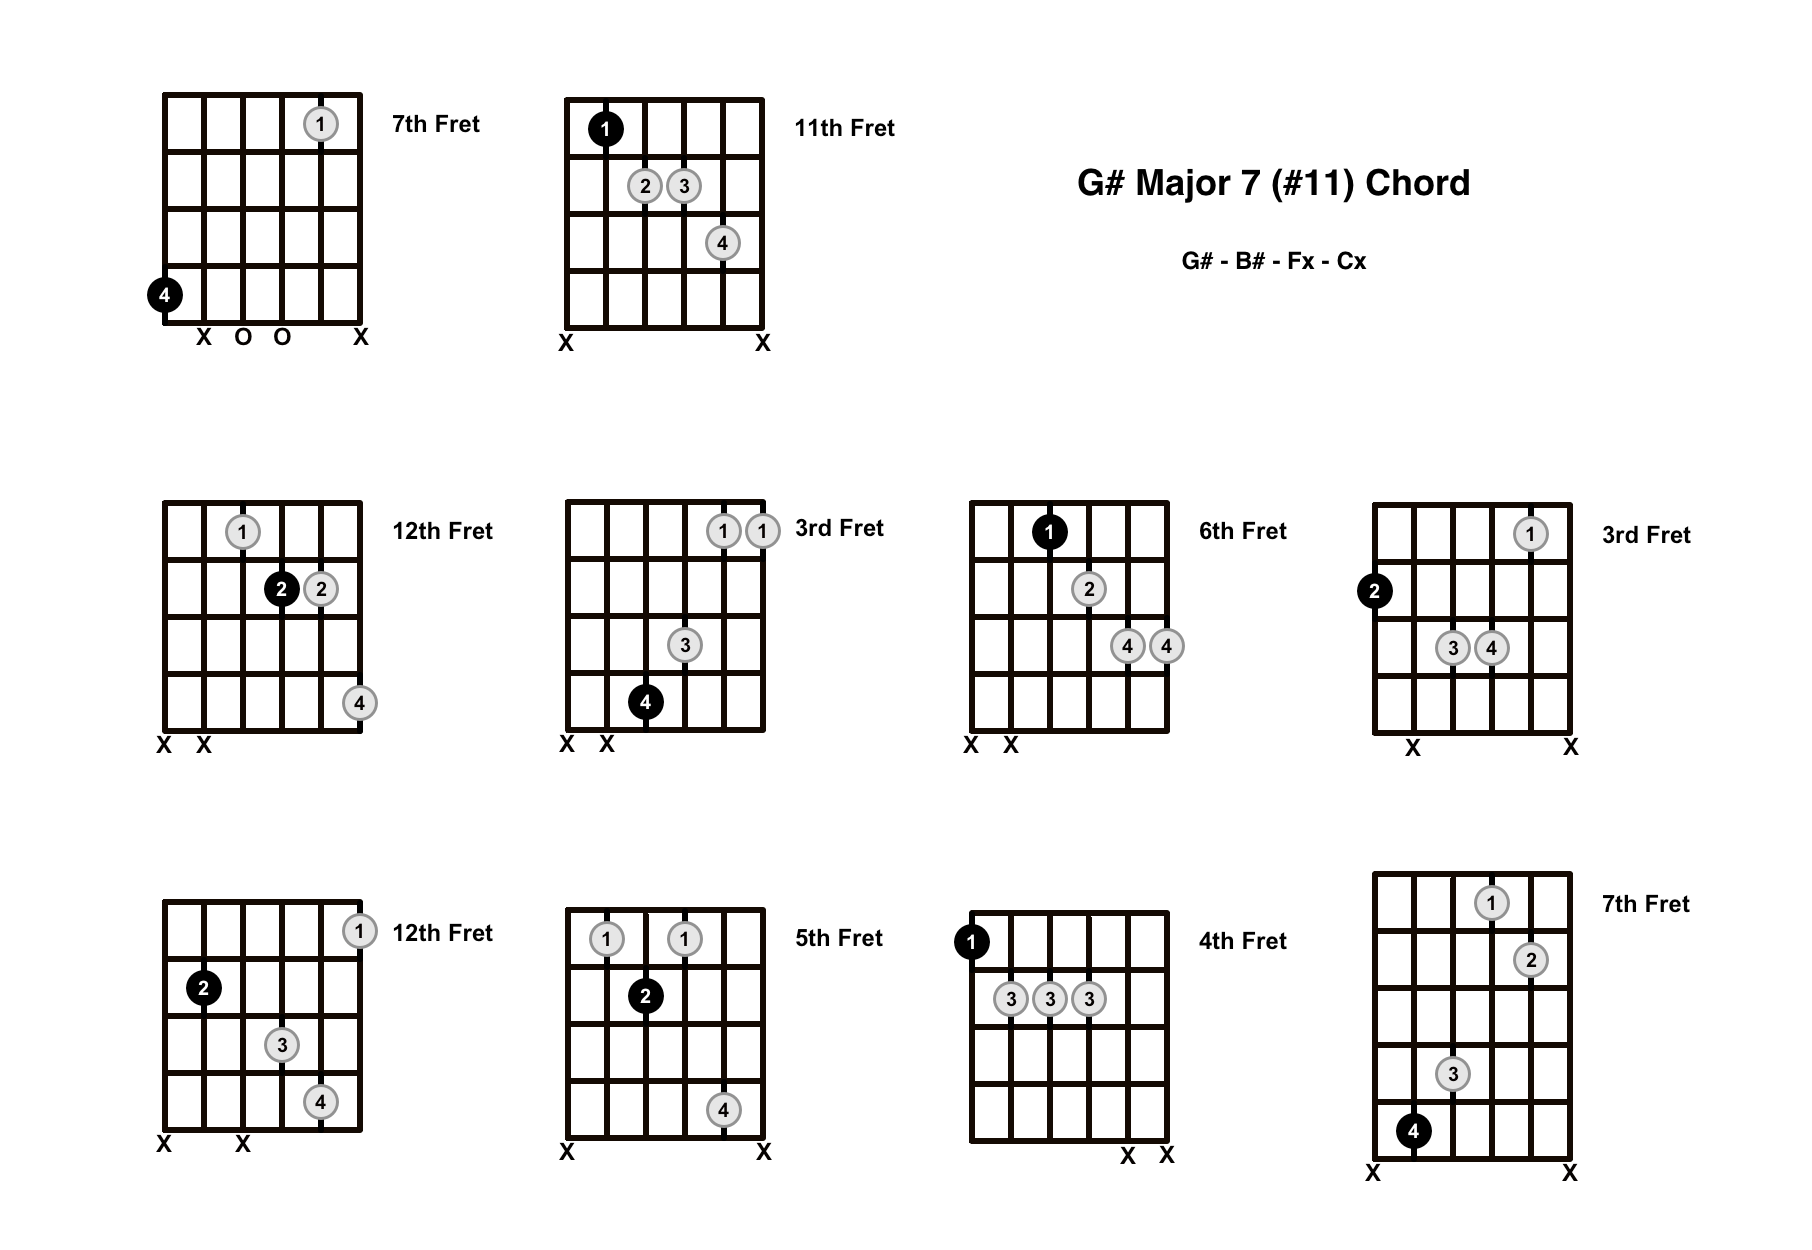 G#maj7#11 Chord On The Guitar (G Sharp Major 7 #11) – Diagrams, Finger Positions and Theory